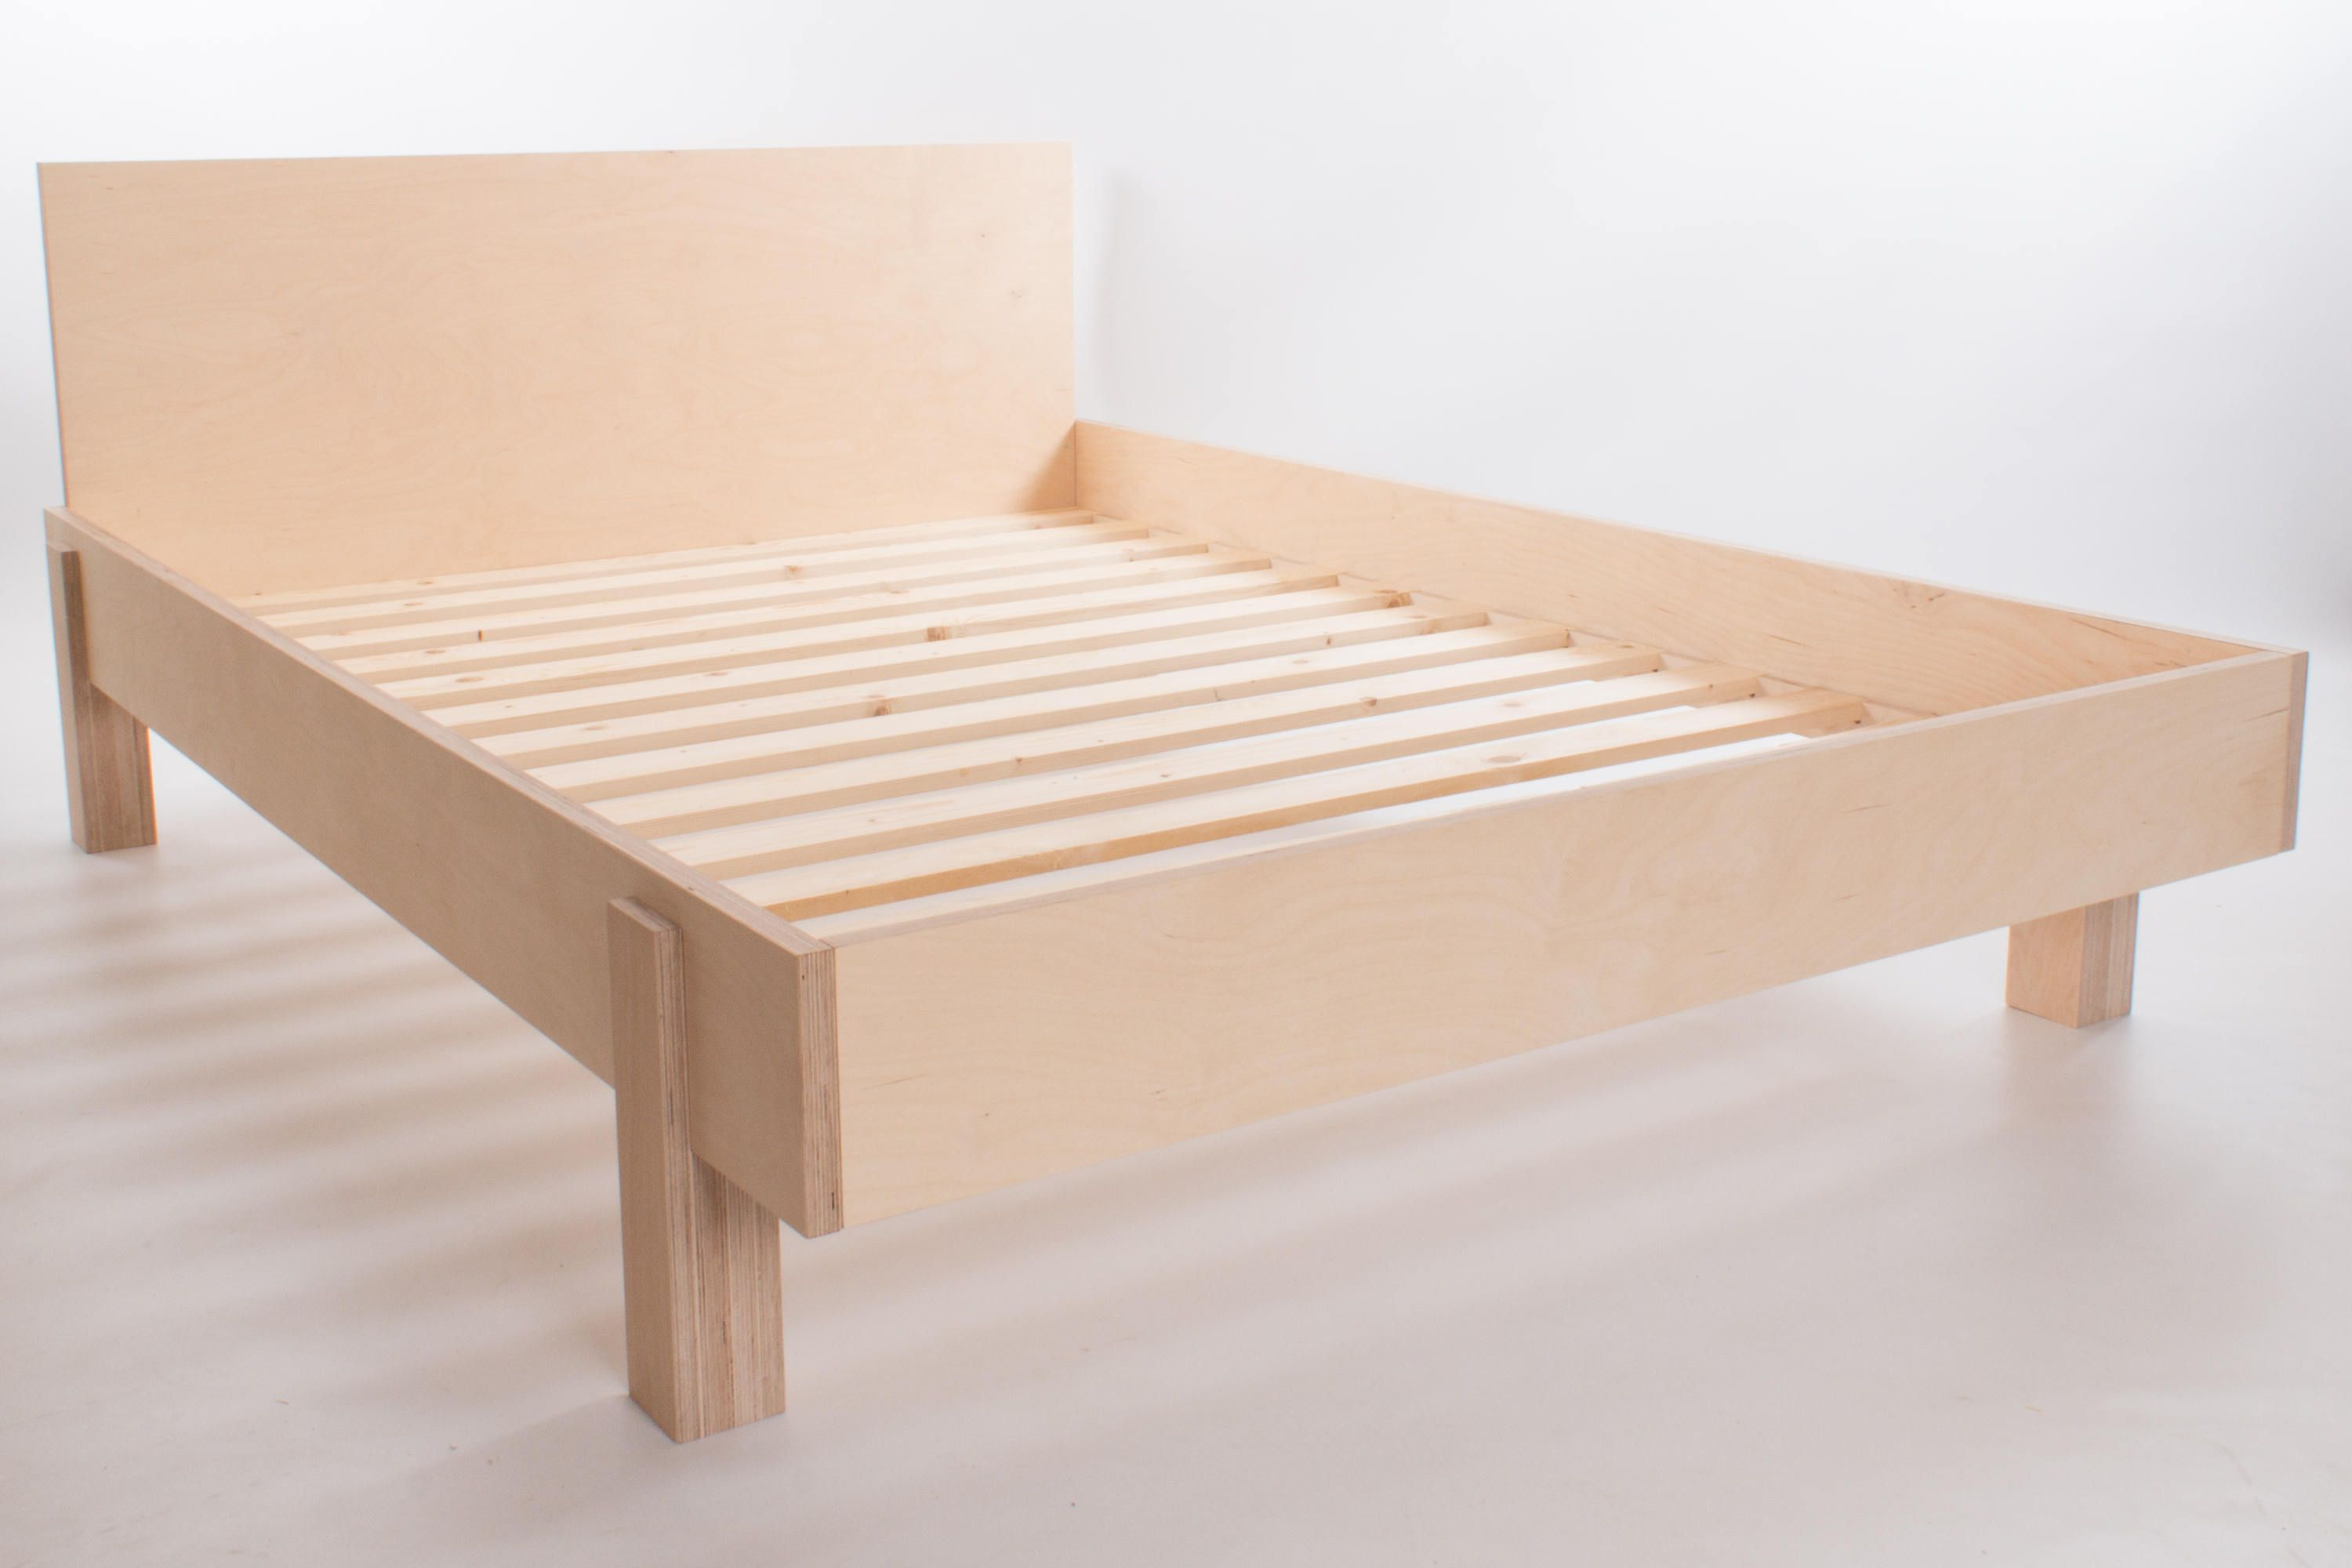 The Nordic Bed Modular Low Bed Birch Plywood International